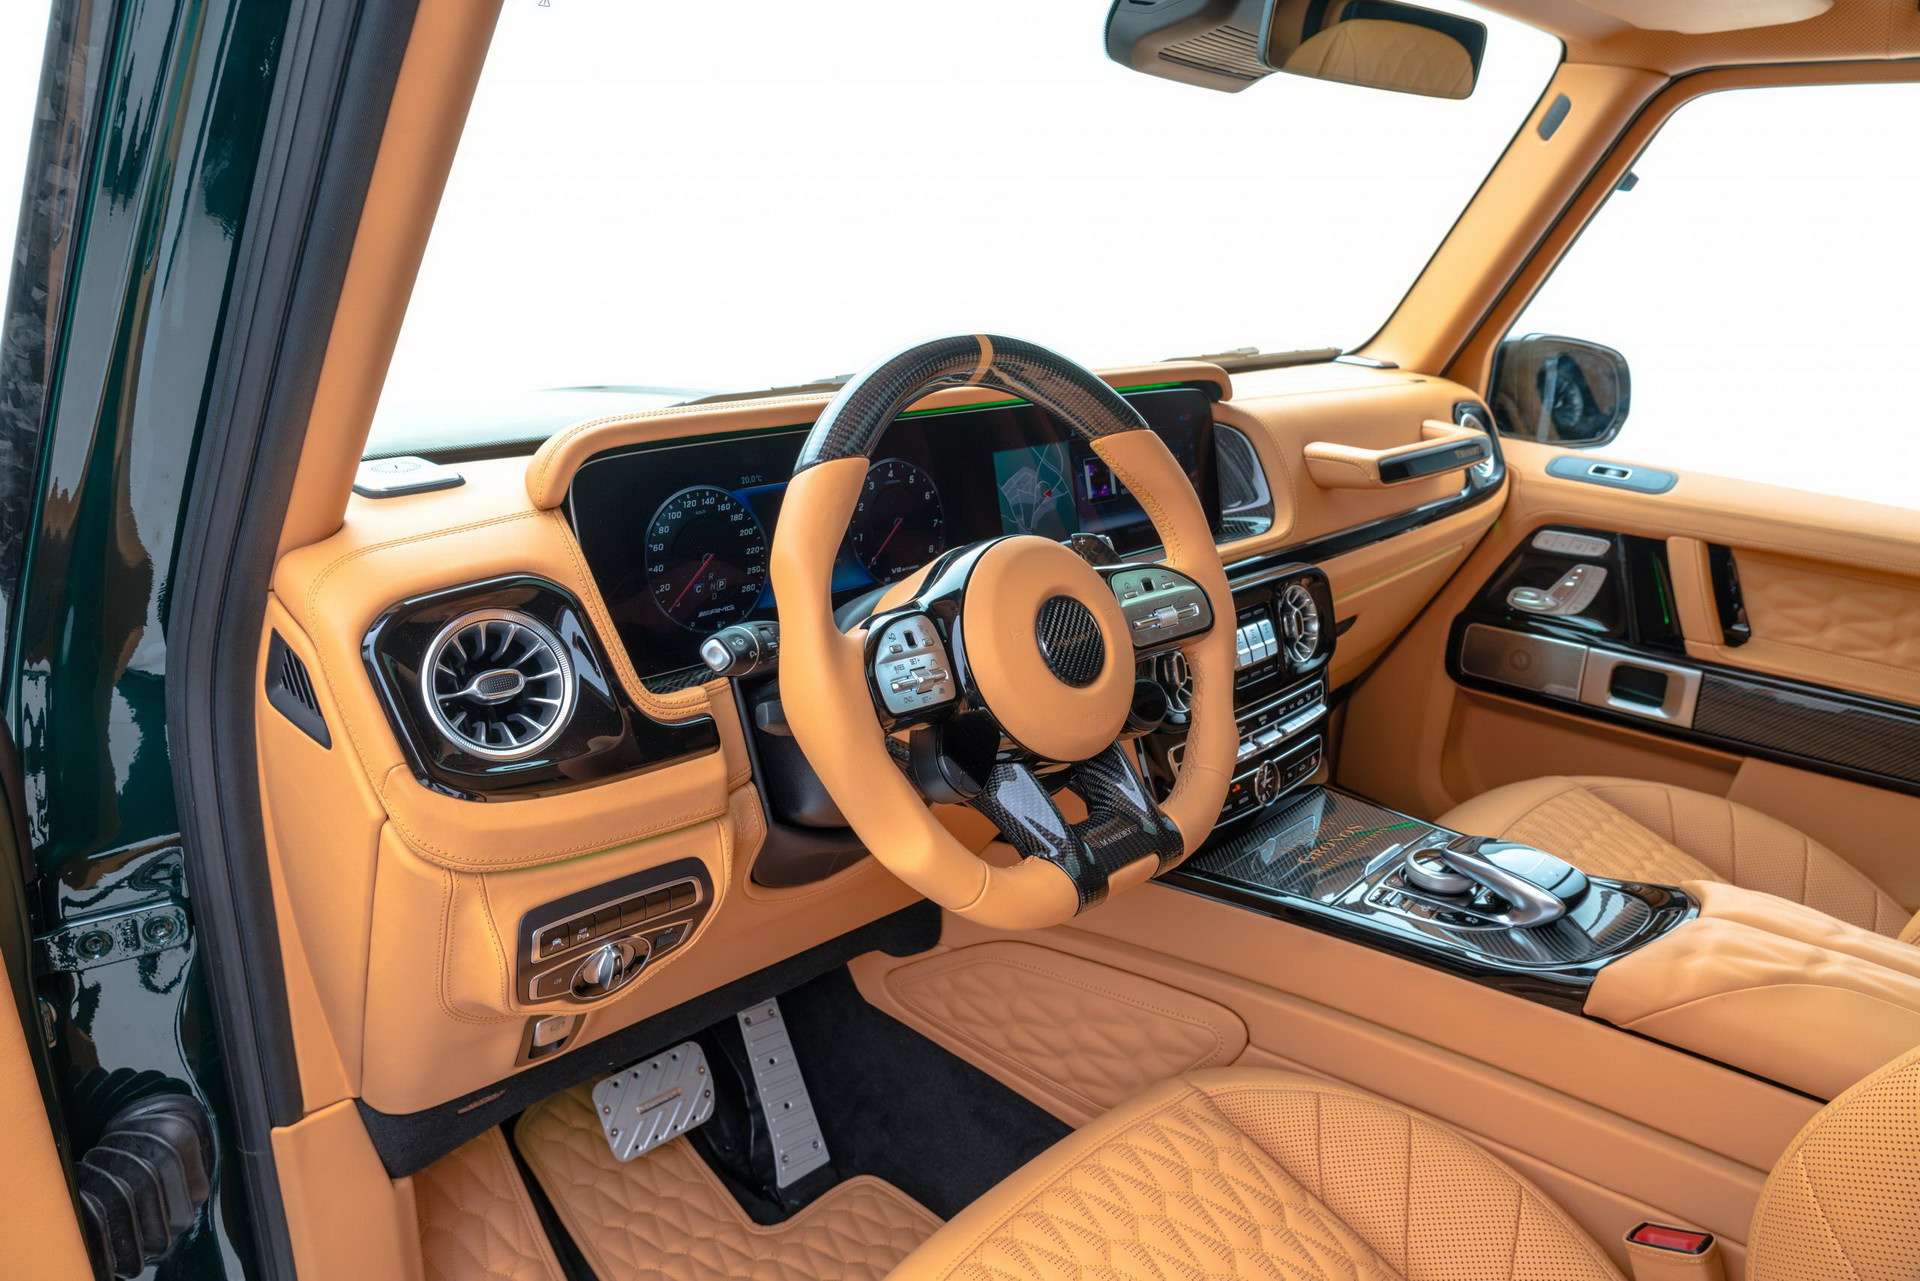 1618365394 778 Mansouris half a million tuning for Mercedes Benz AMG G63 Mansouri's half a million tuning for Mercedes-Benz AMG G63 8